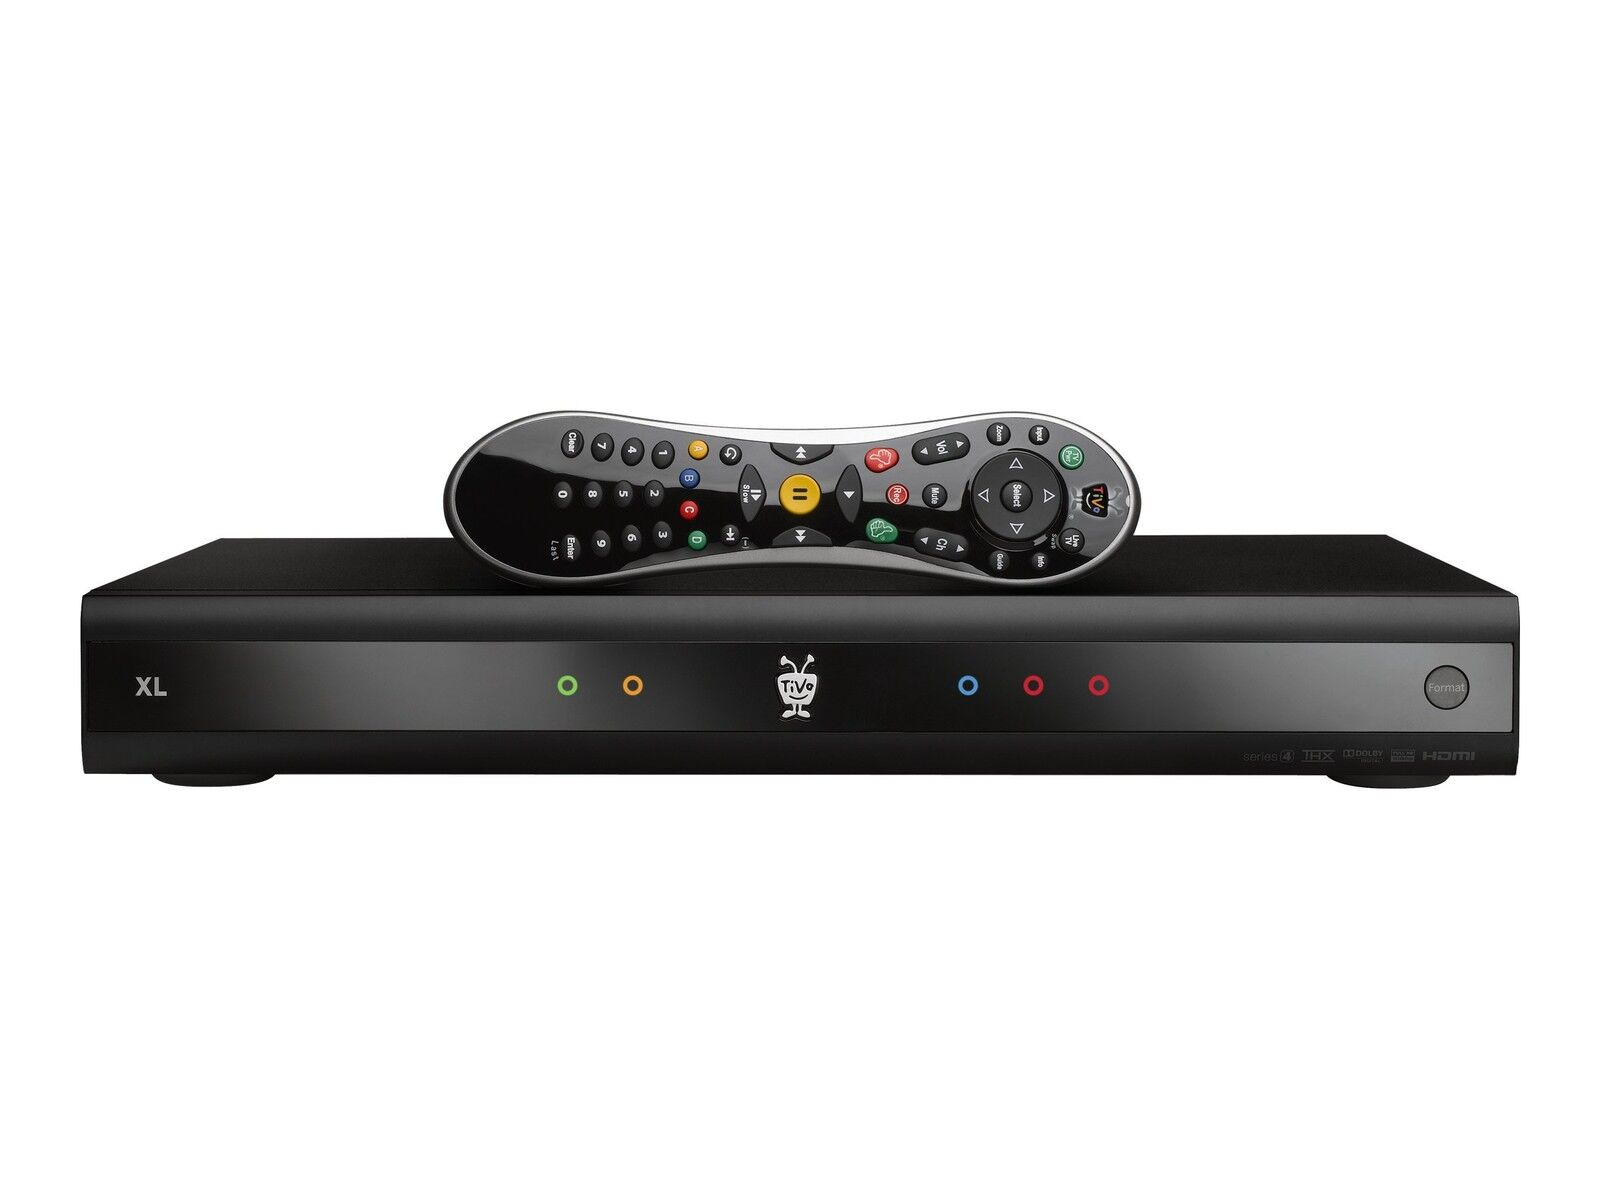 tivo premiere xl tcd746320 with remote and manual ebay rh ebay com tivo premiere xl4 manual pdf tivo premiere xl4 manual pdf